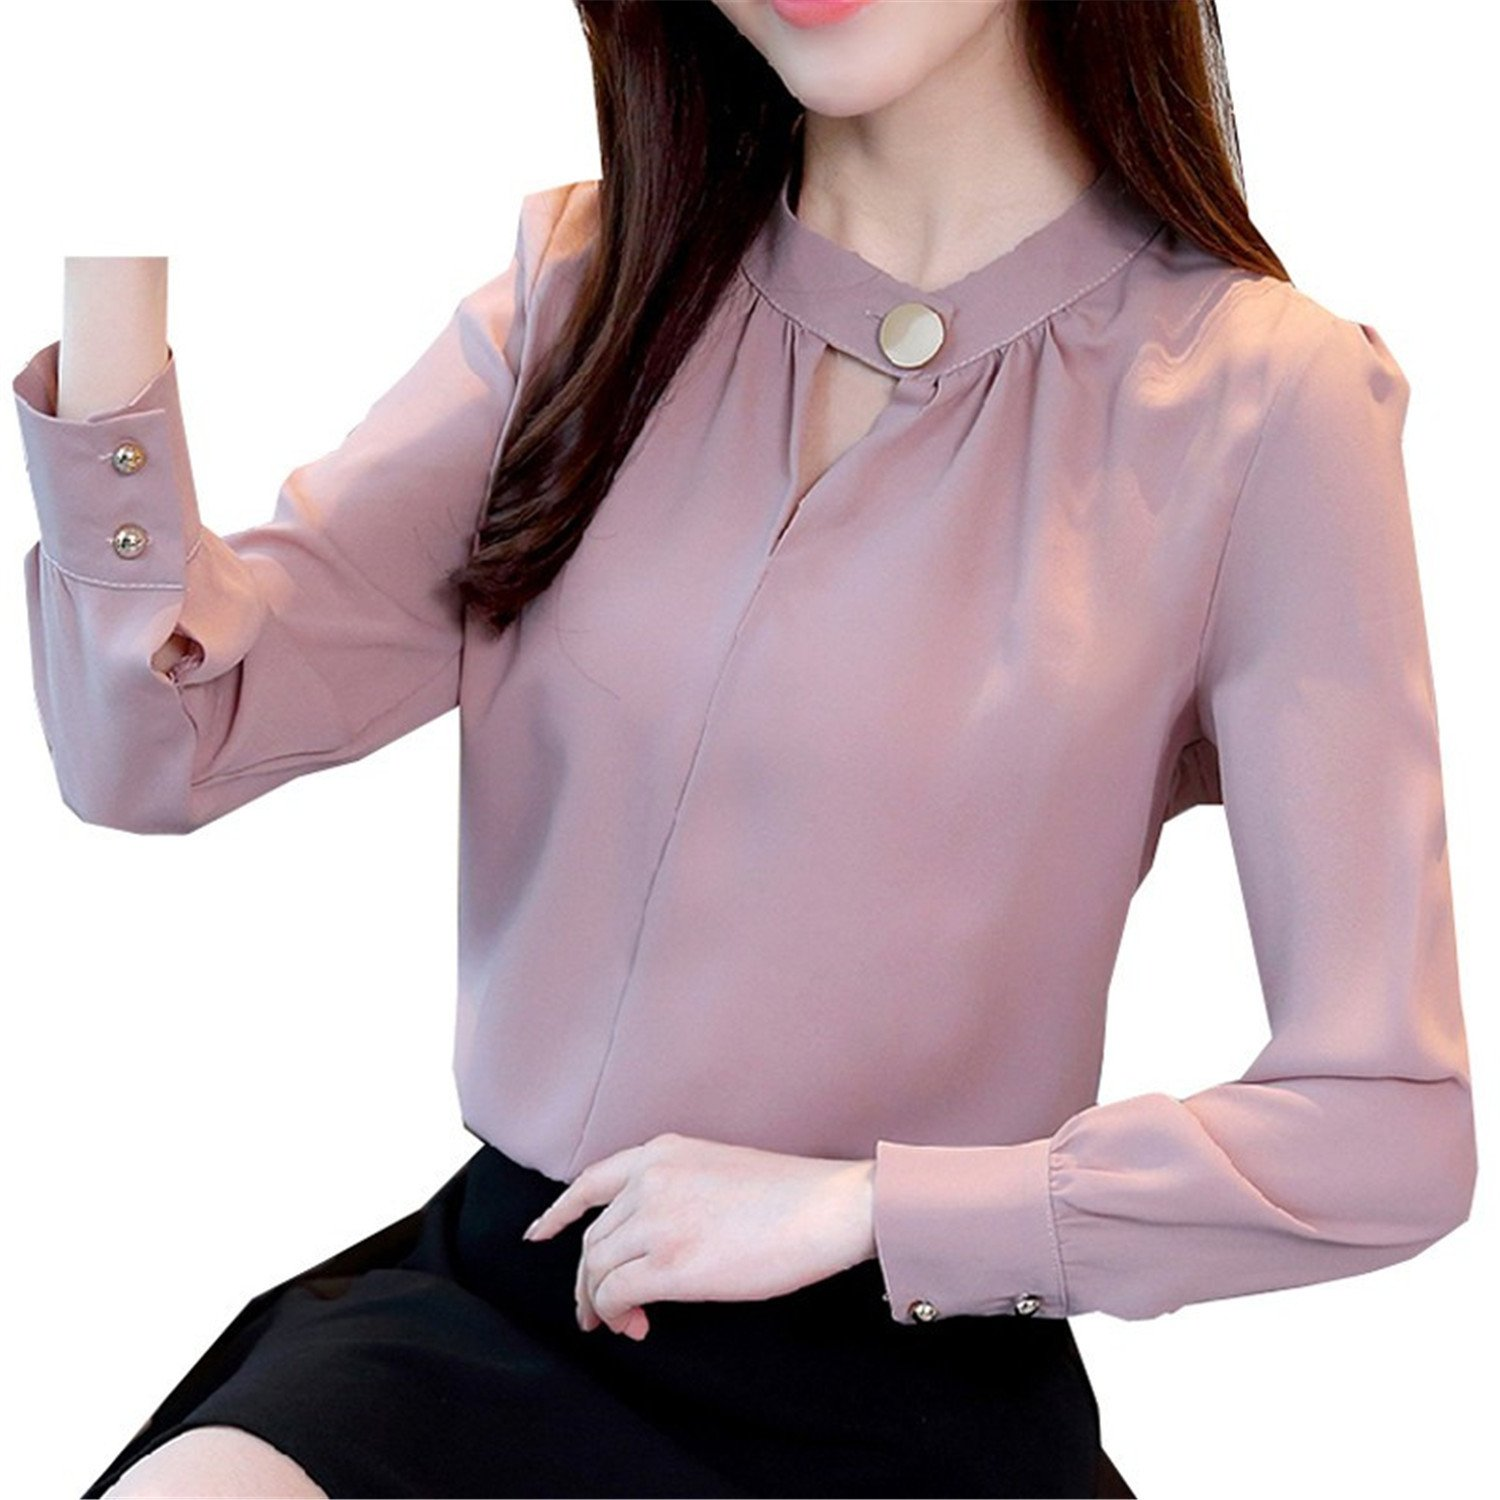 FANGZHENG 2018 Women Tops and Blouses Spring Long Sleeve Chiffon Blouse Women Casual V-Neck Solid Office Shirts at Amazon Womens Clothing store: